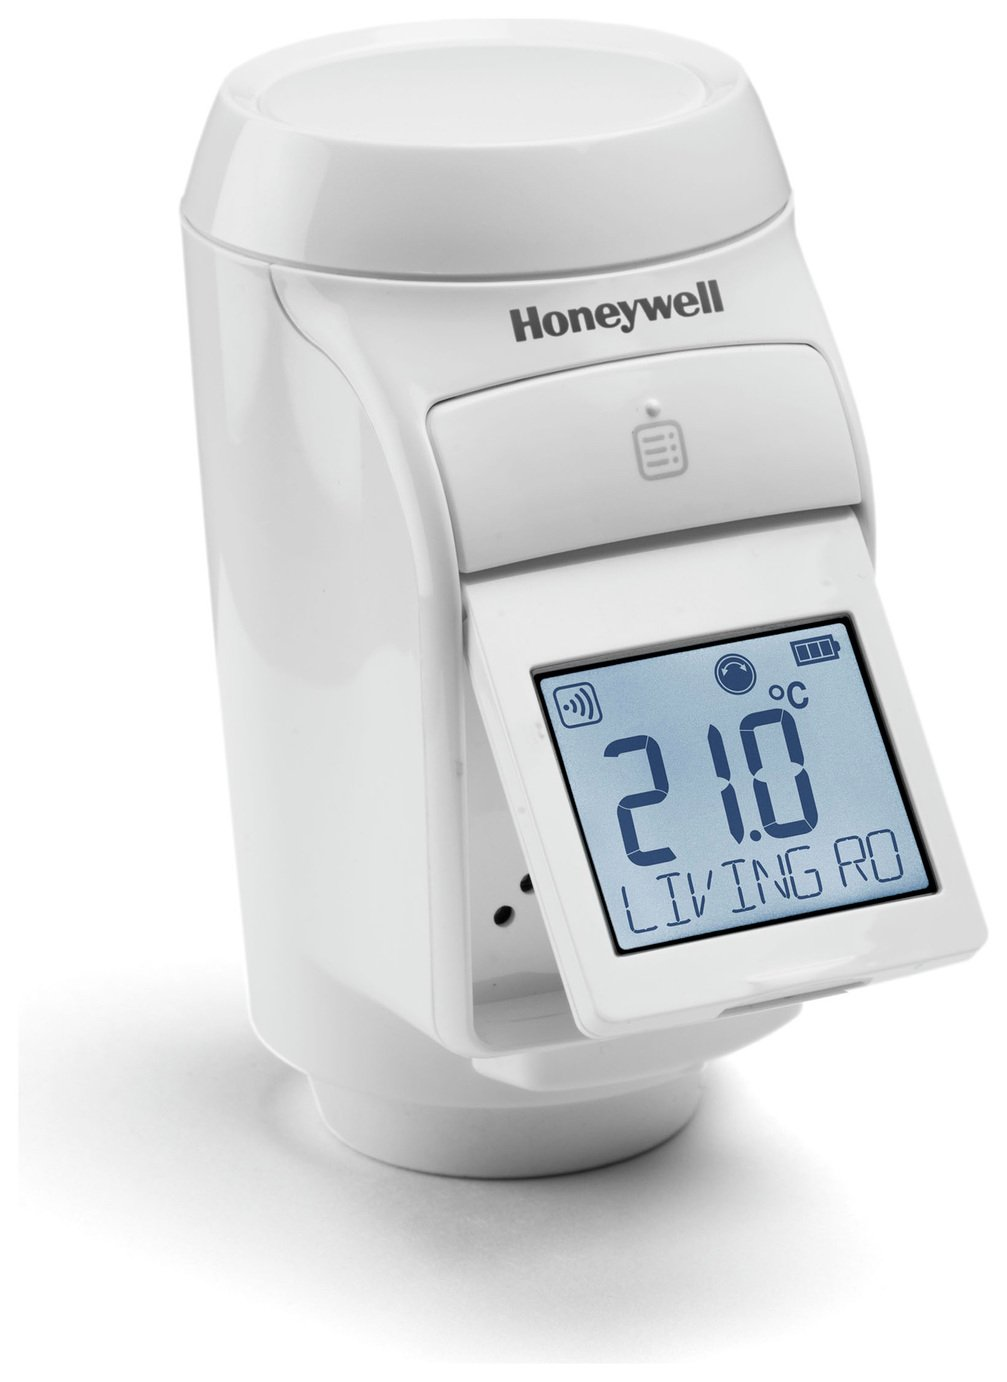 Image of Honeywell Evohome Radiator Controller